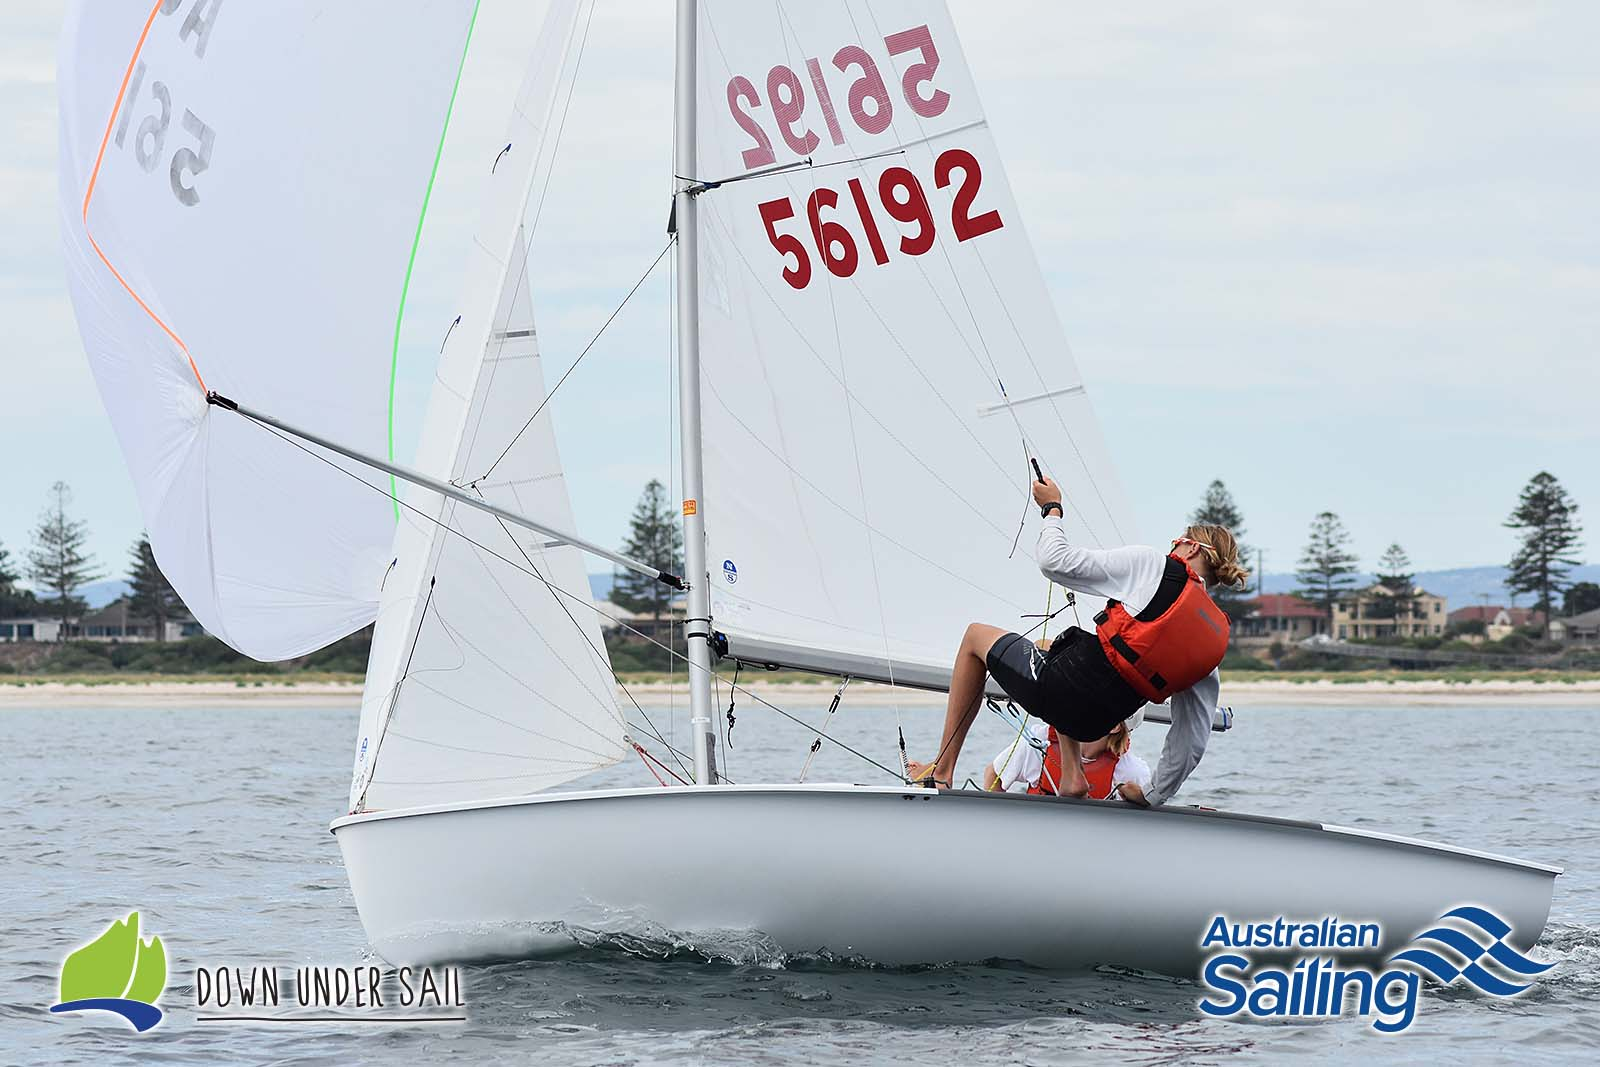 Matt Meaney and Sam Magarey were the overall winners in the 420 fleet.